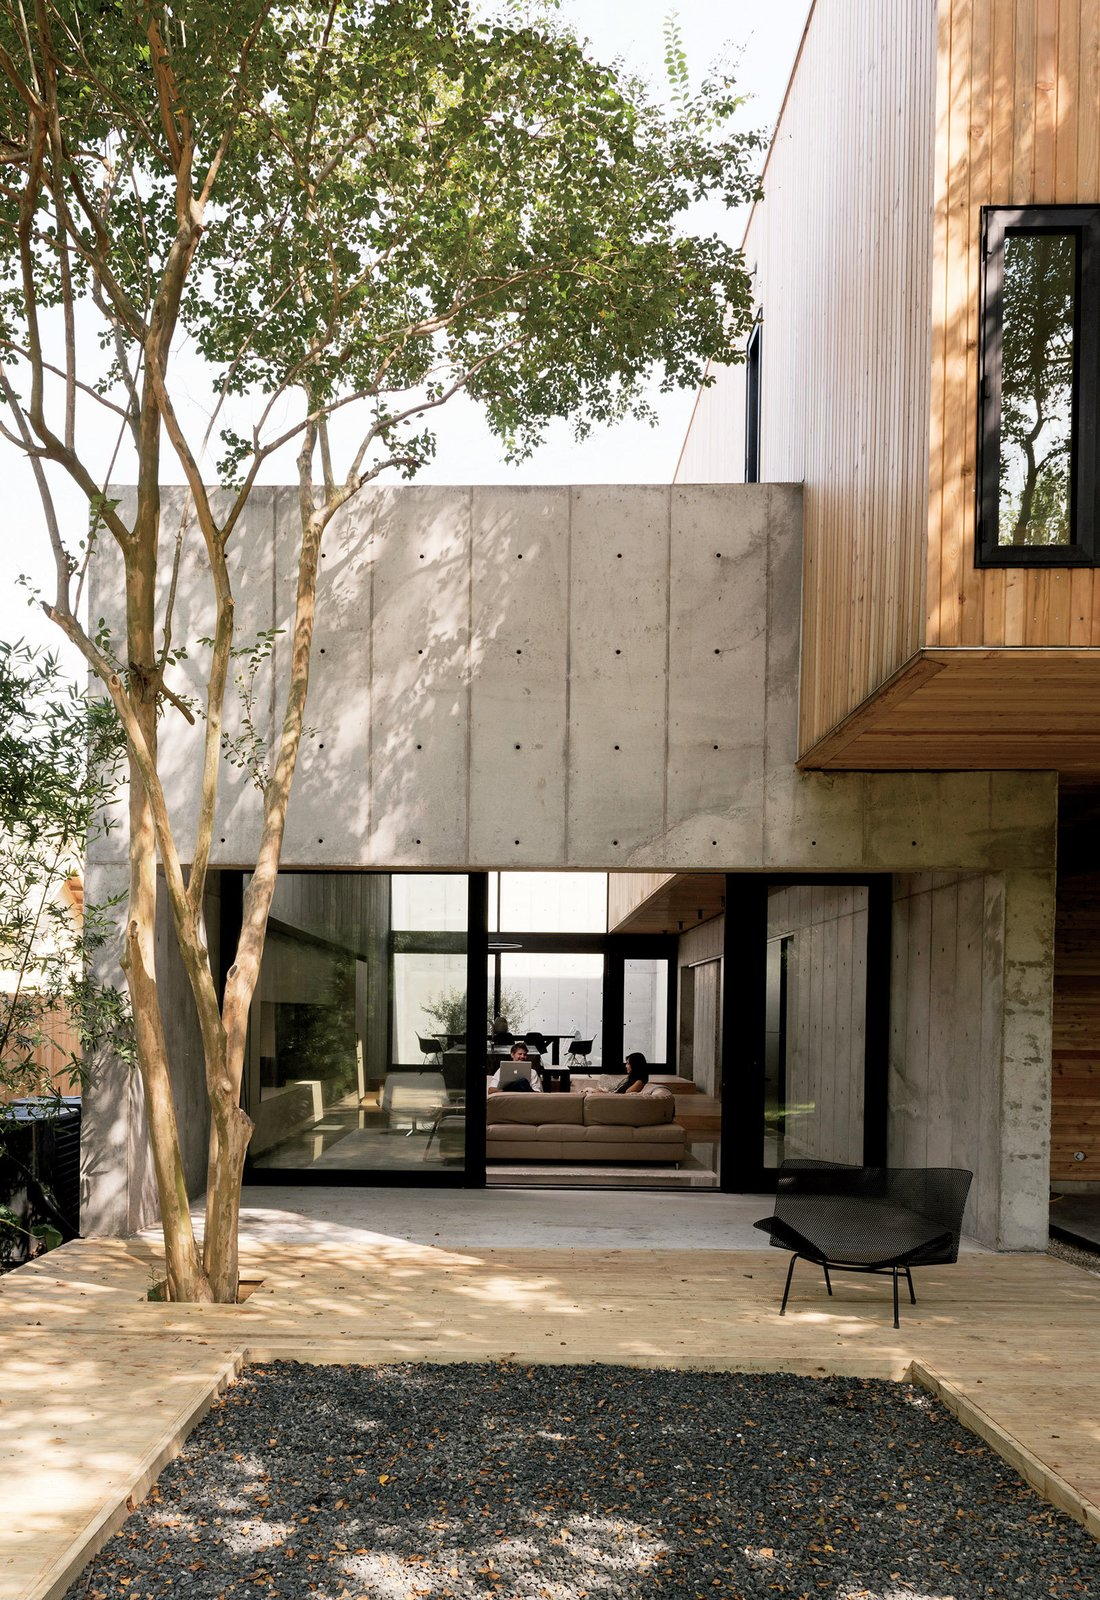 Concrete Box House backyard patio with cement and wood floors